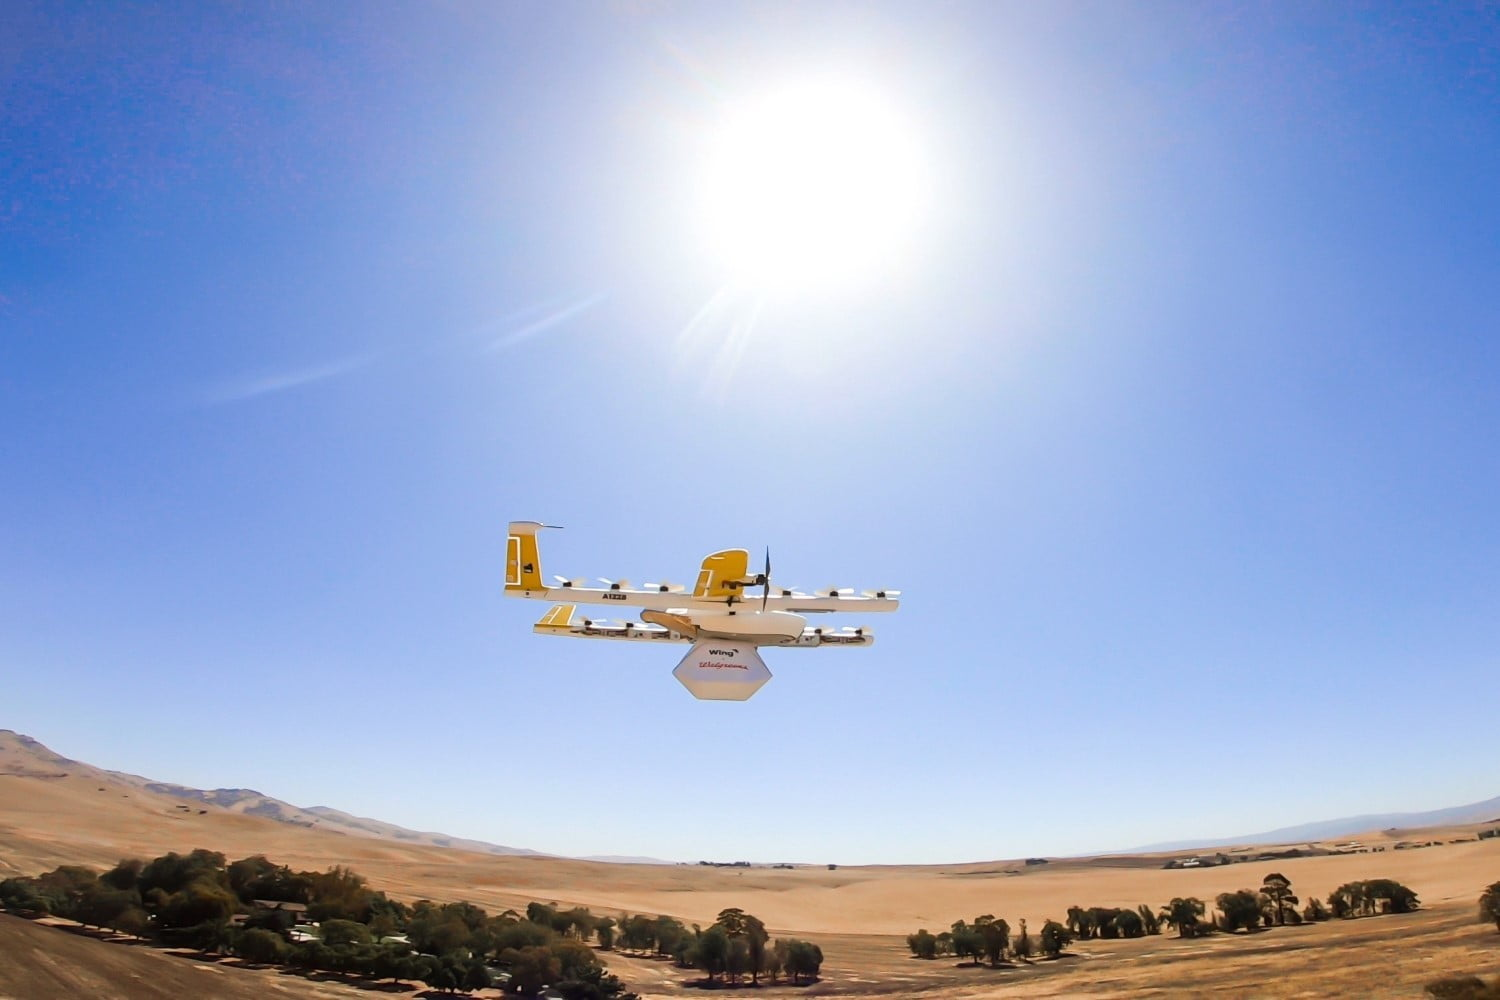 A Wing Delivery Drone